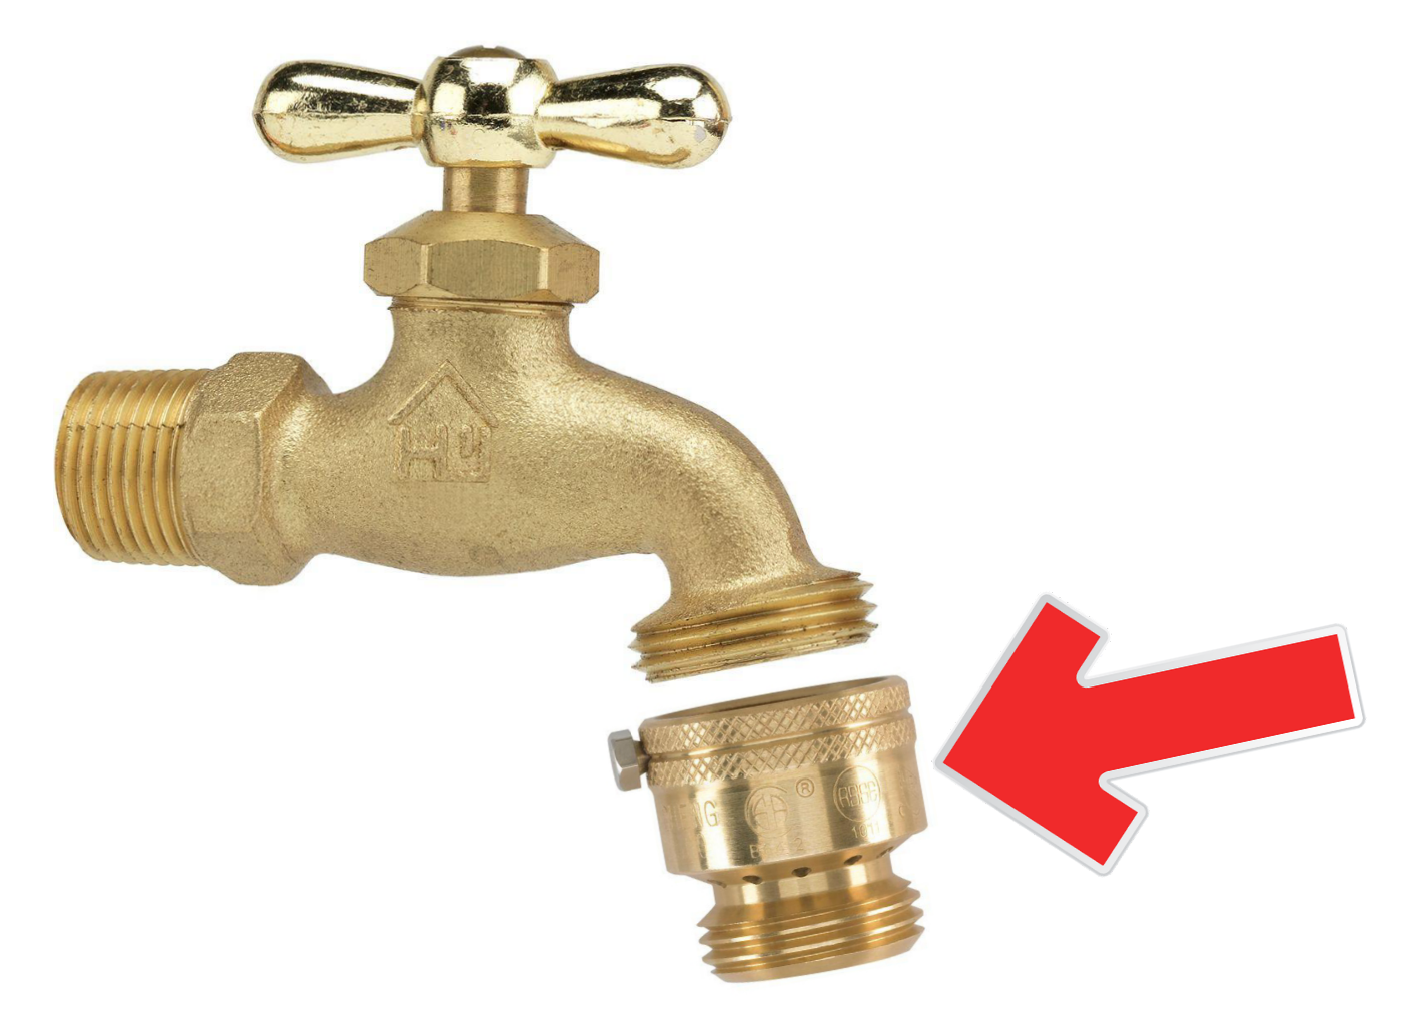 A backflow prevention device at hose bibs protects potable water from contamination due to backflow. The set screw should shear off when tightened to prevent removal once installed.